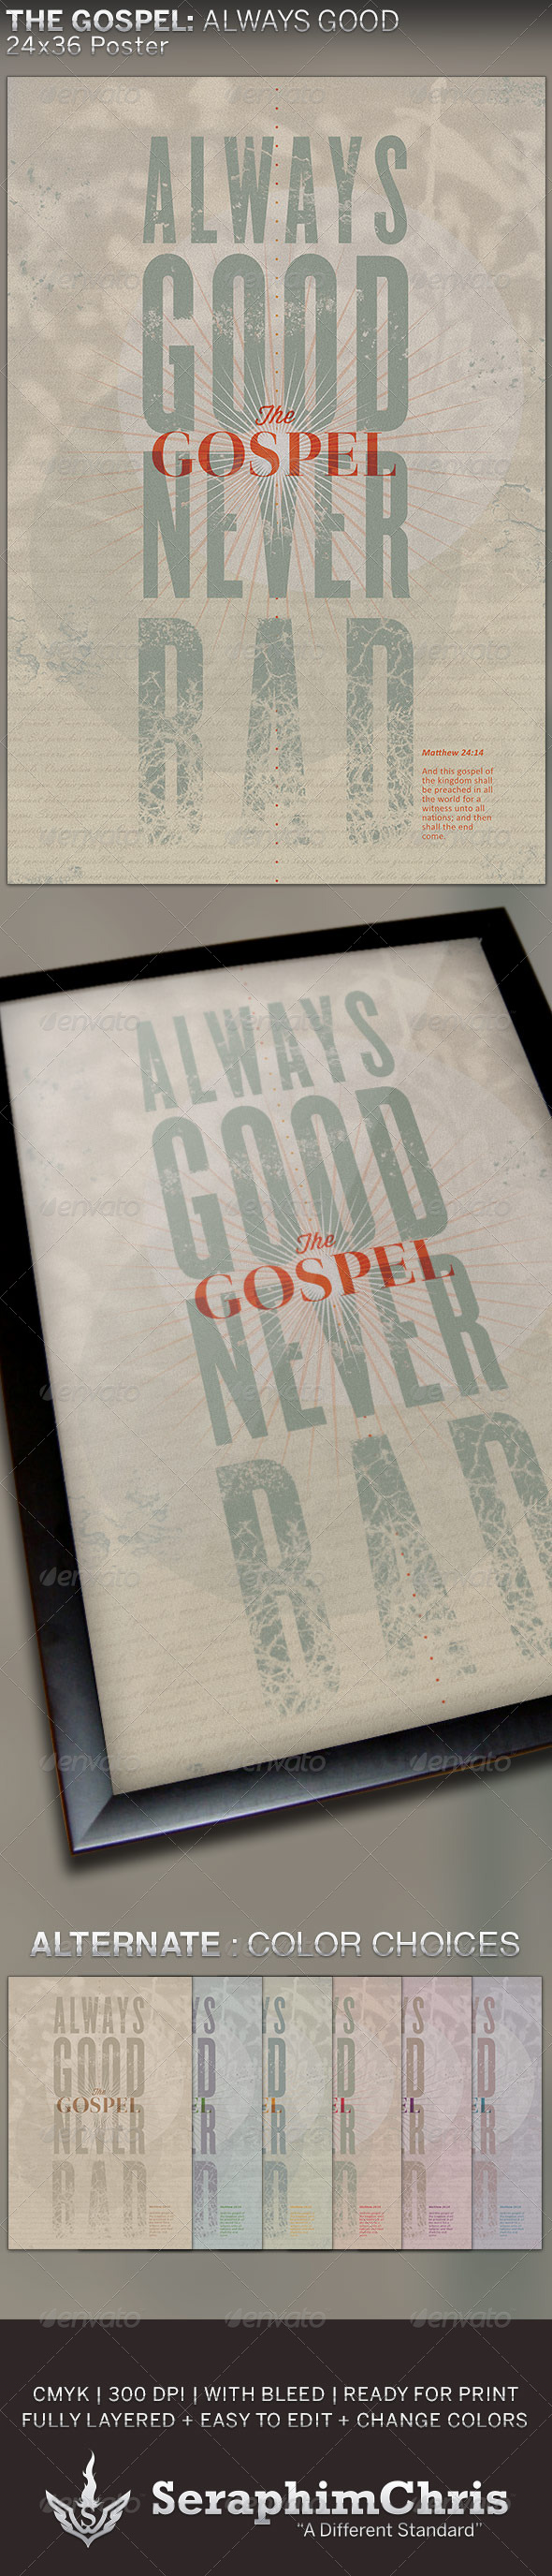 GraphicRiver Gospel Always Good 24x36 Poster Template 5368026